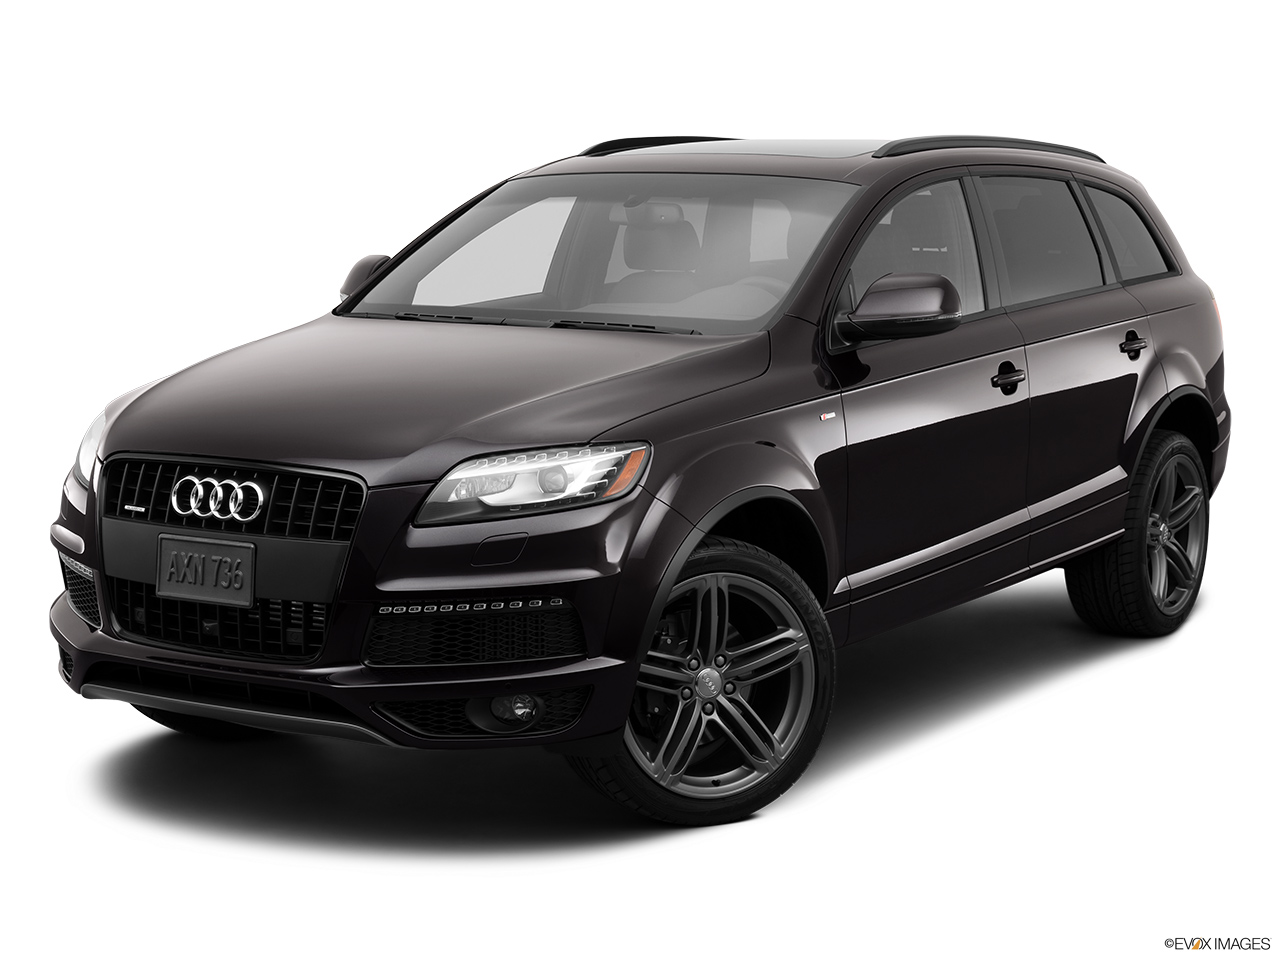 2014 audi q7 quattro 3 0l tdi premium plus. Black Bedroom Furniture Sets. Home Design Ideas